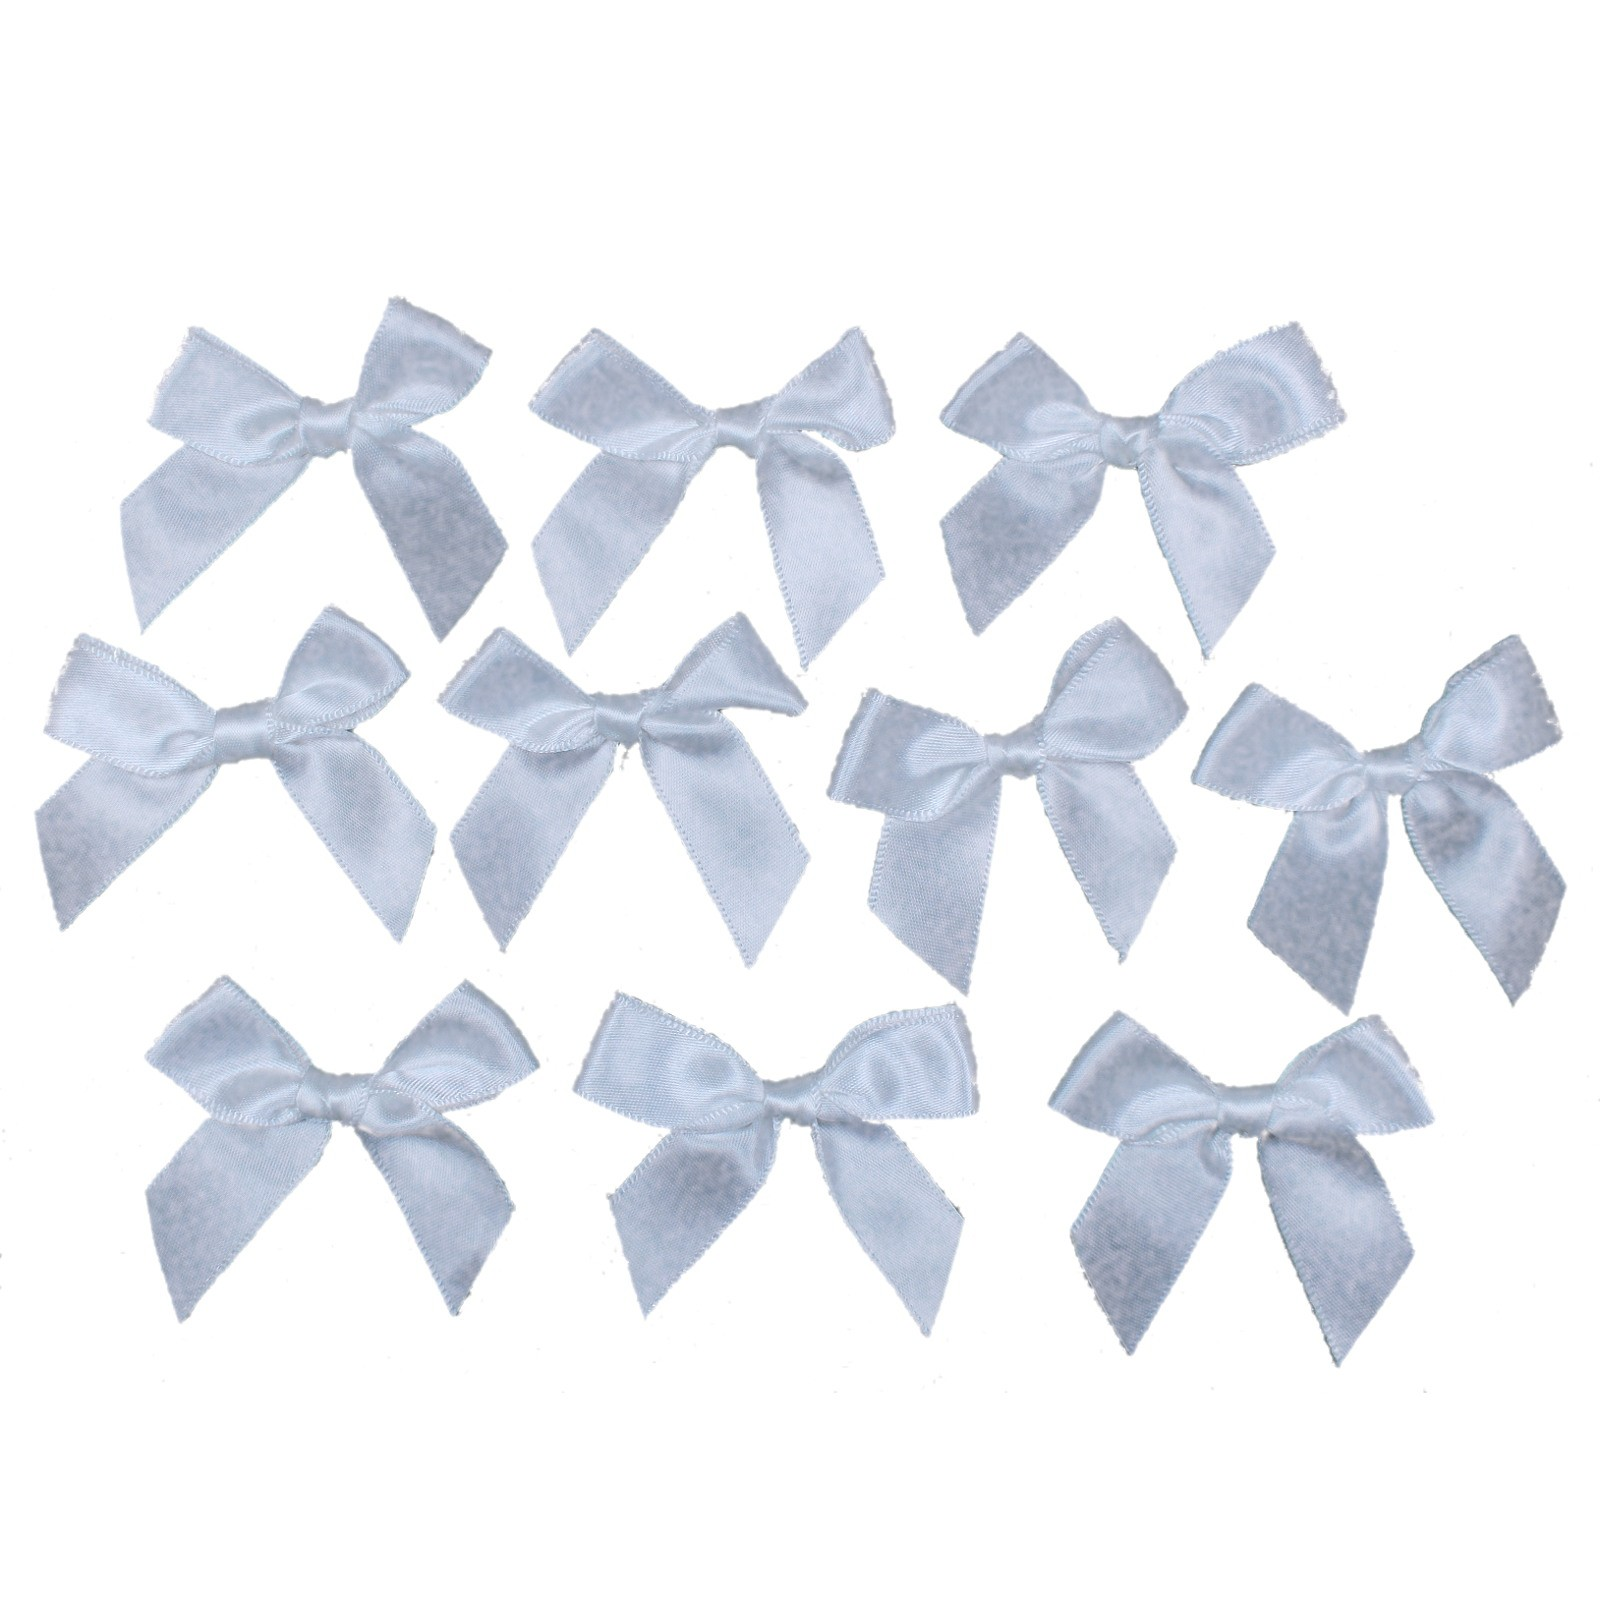 Satin Ribbon Bows approx 5.5cm wide White Pack of 10